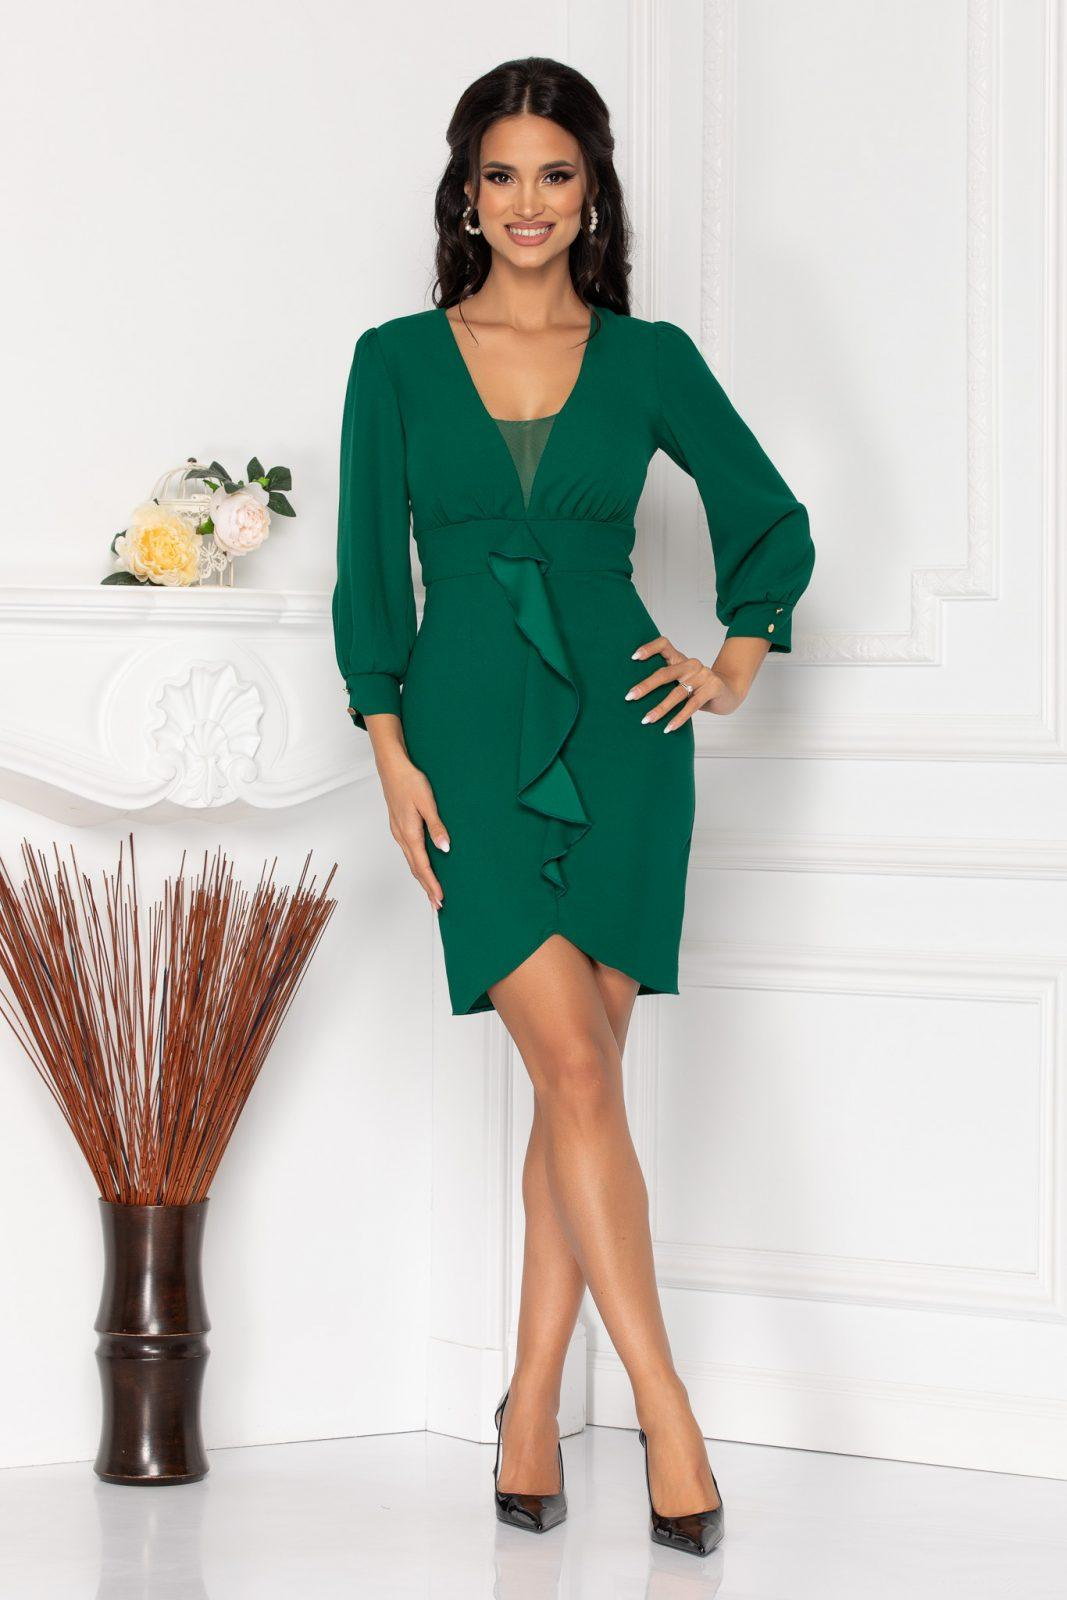 Moze Orlanda Green Dress